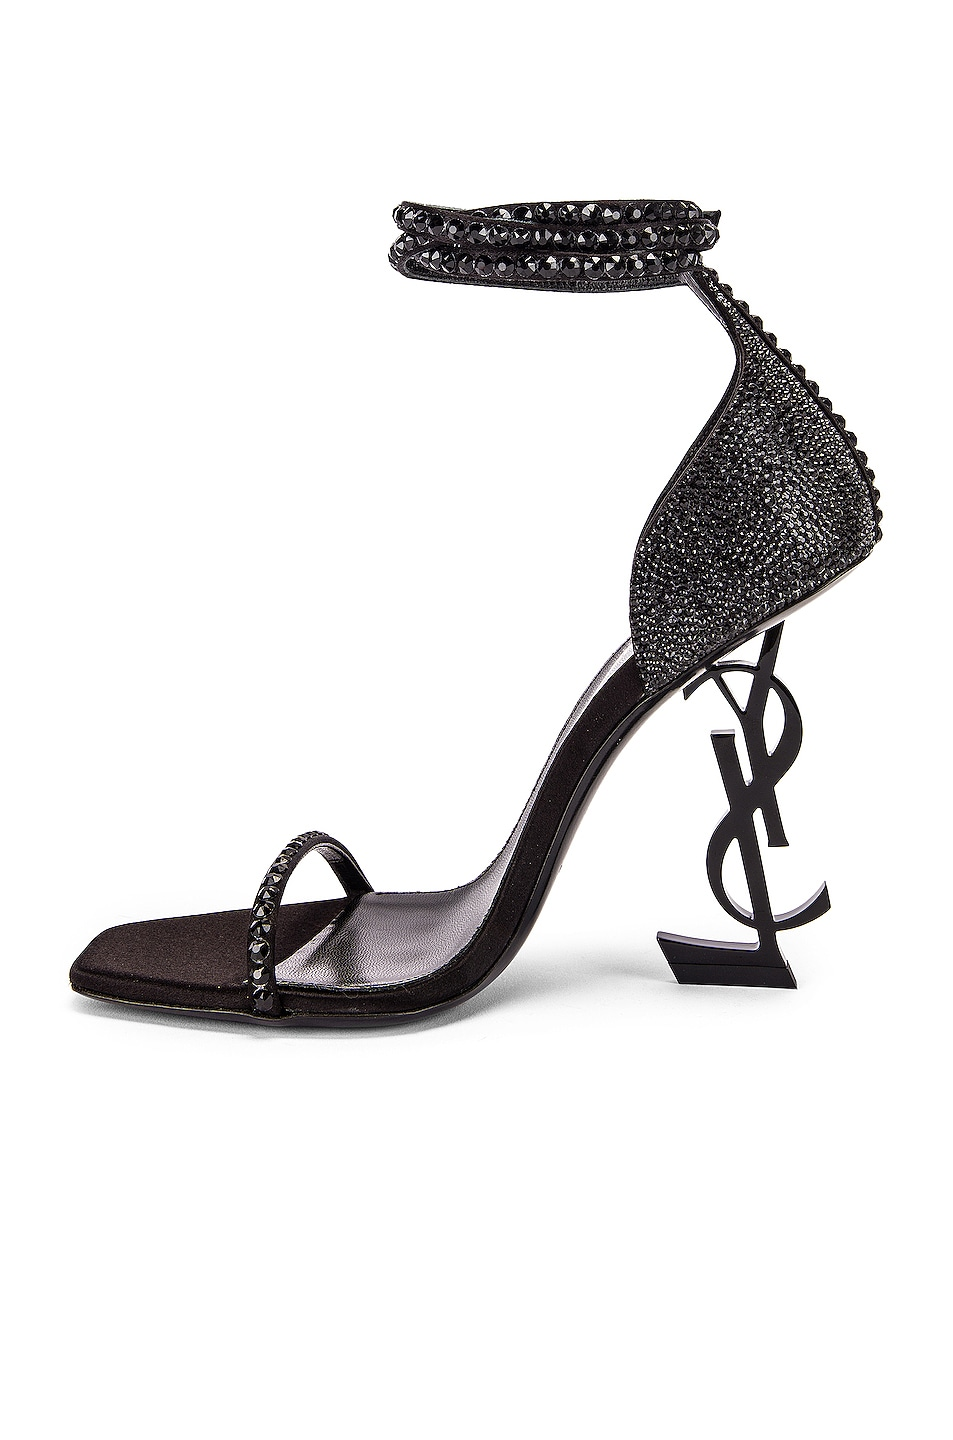 Image 5 of Saint Laurent Swarovski Opyum Double Ankle Strap Sandals in Black